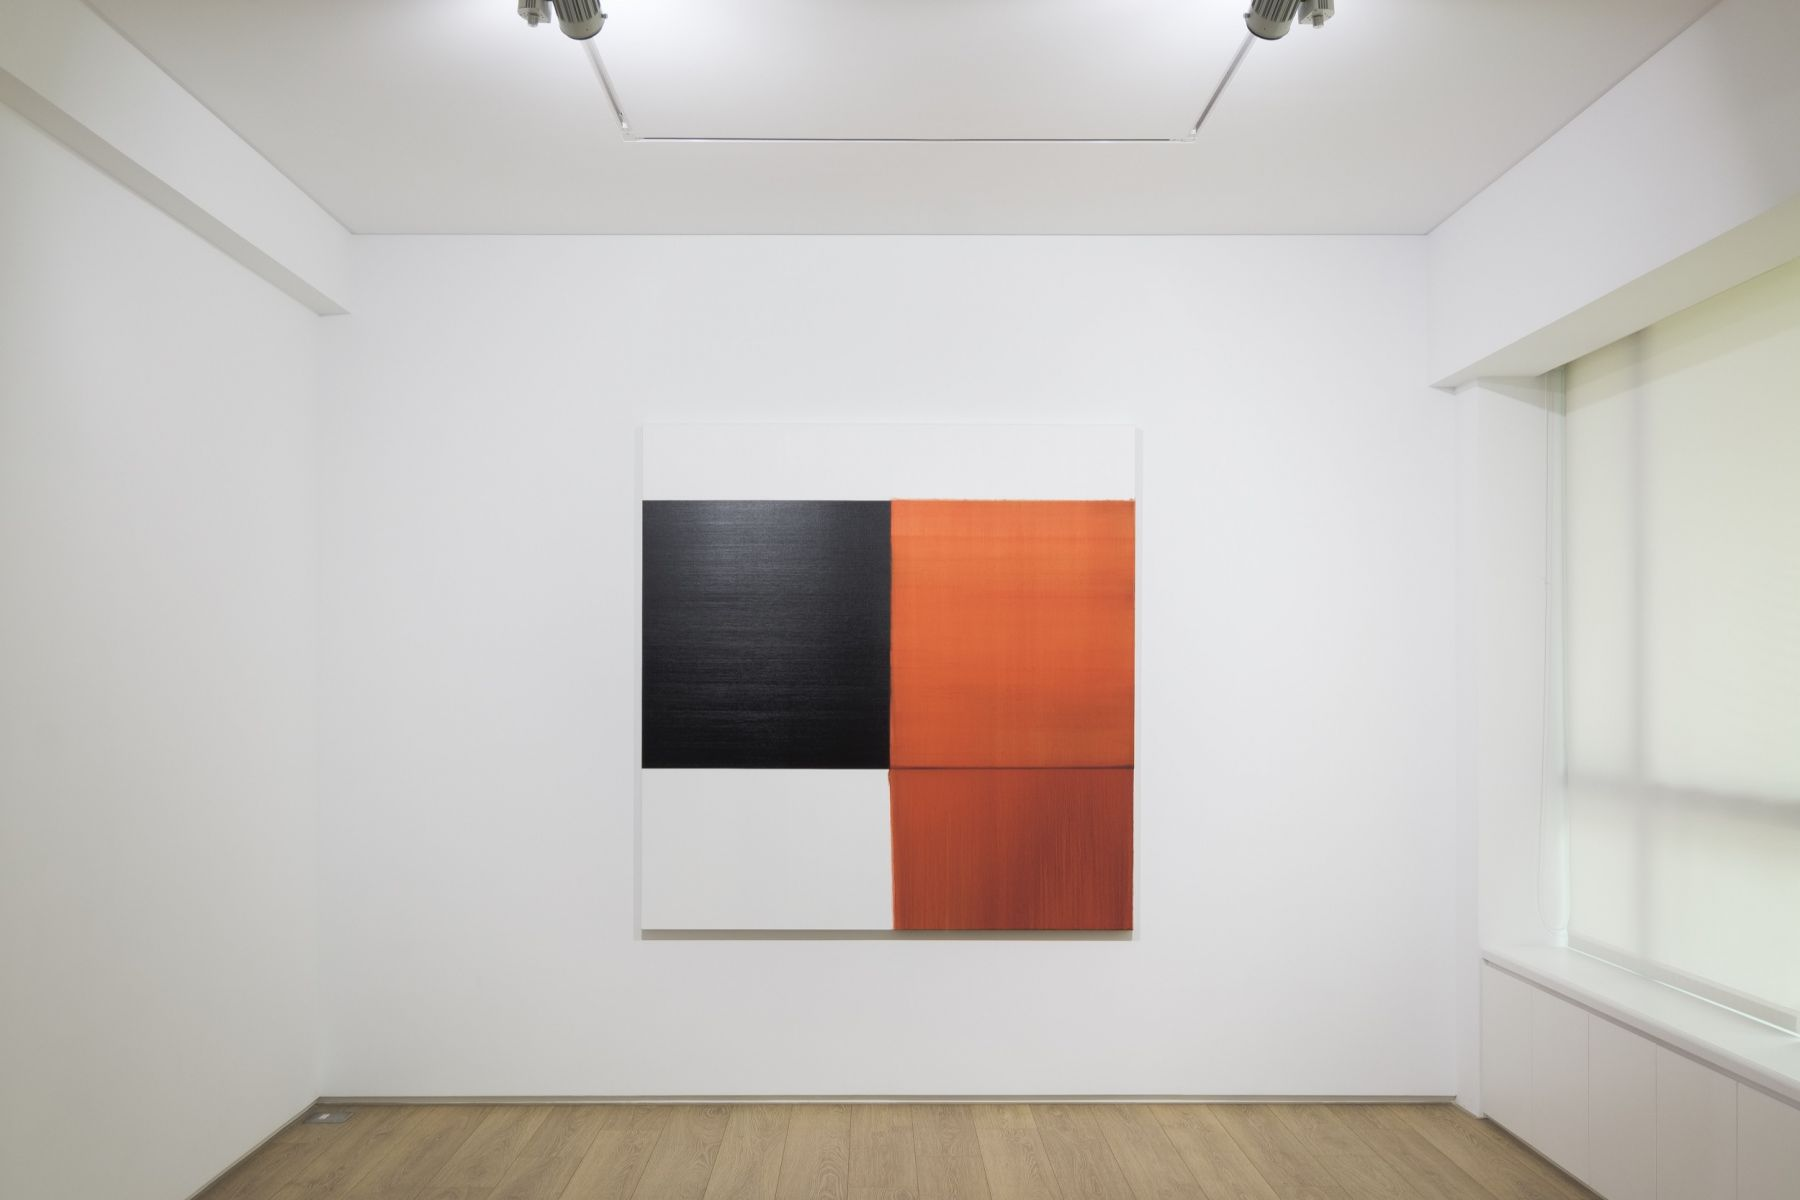 Installation view of Callum Innes at Sean Kelly Asia